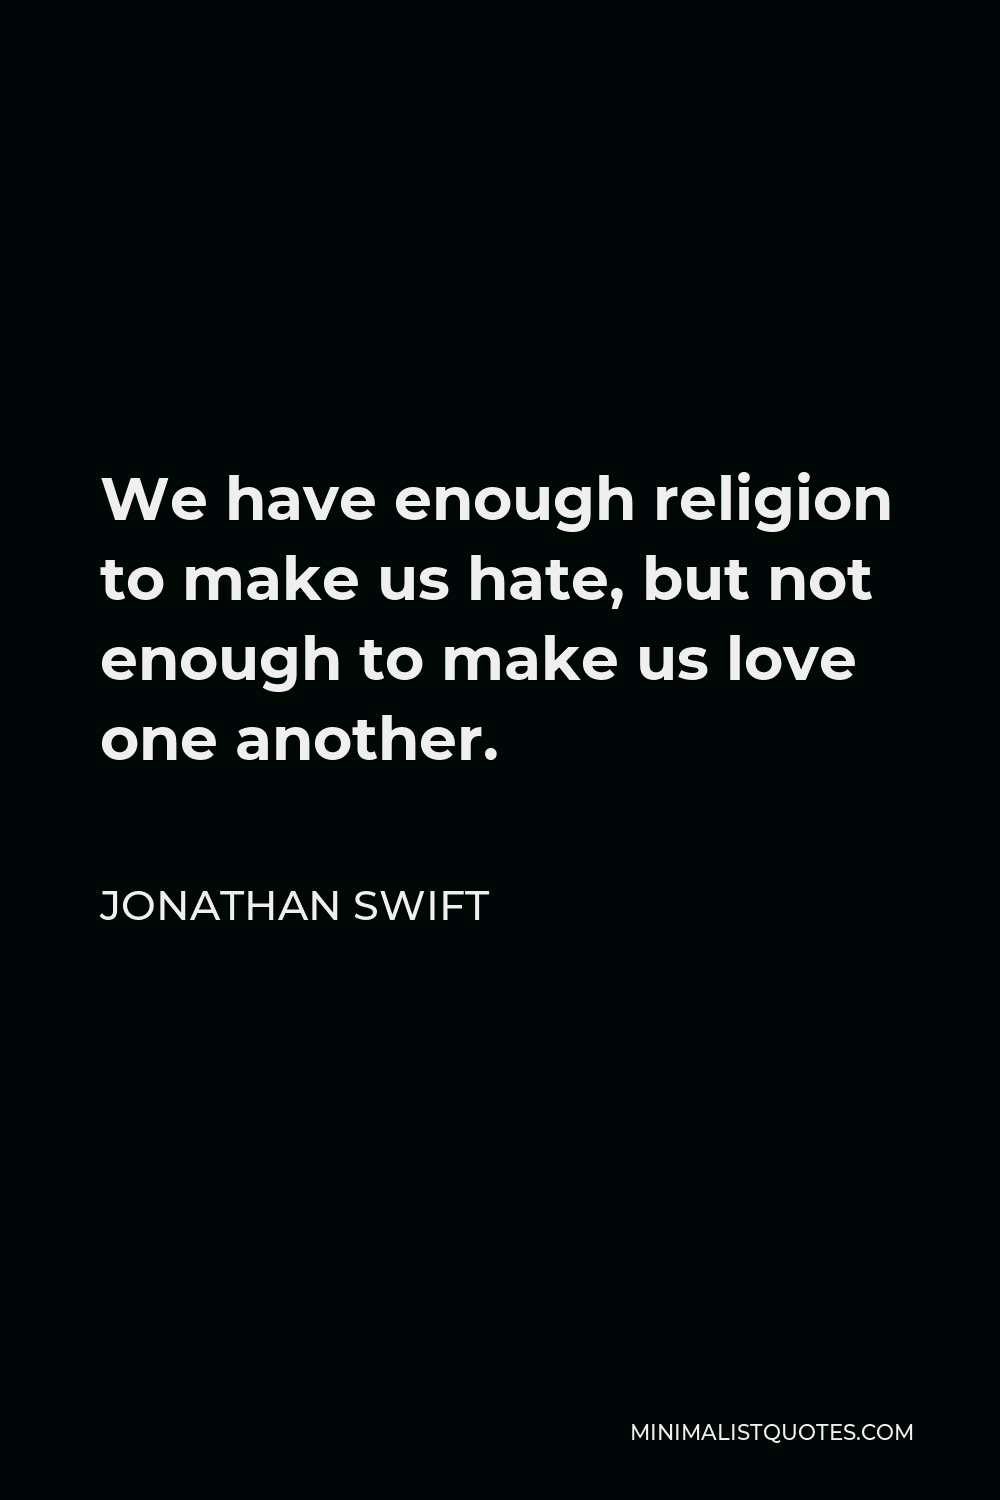 Jonathan Swift Quote - We have enough religion to make us hate, but not enough to make us love one another.